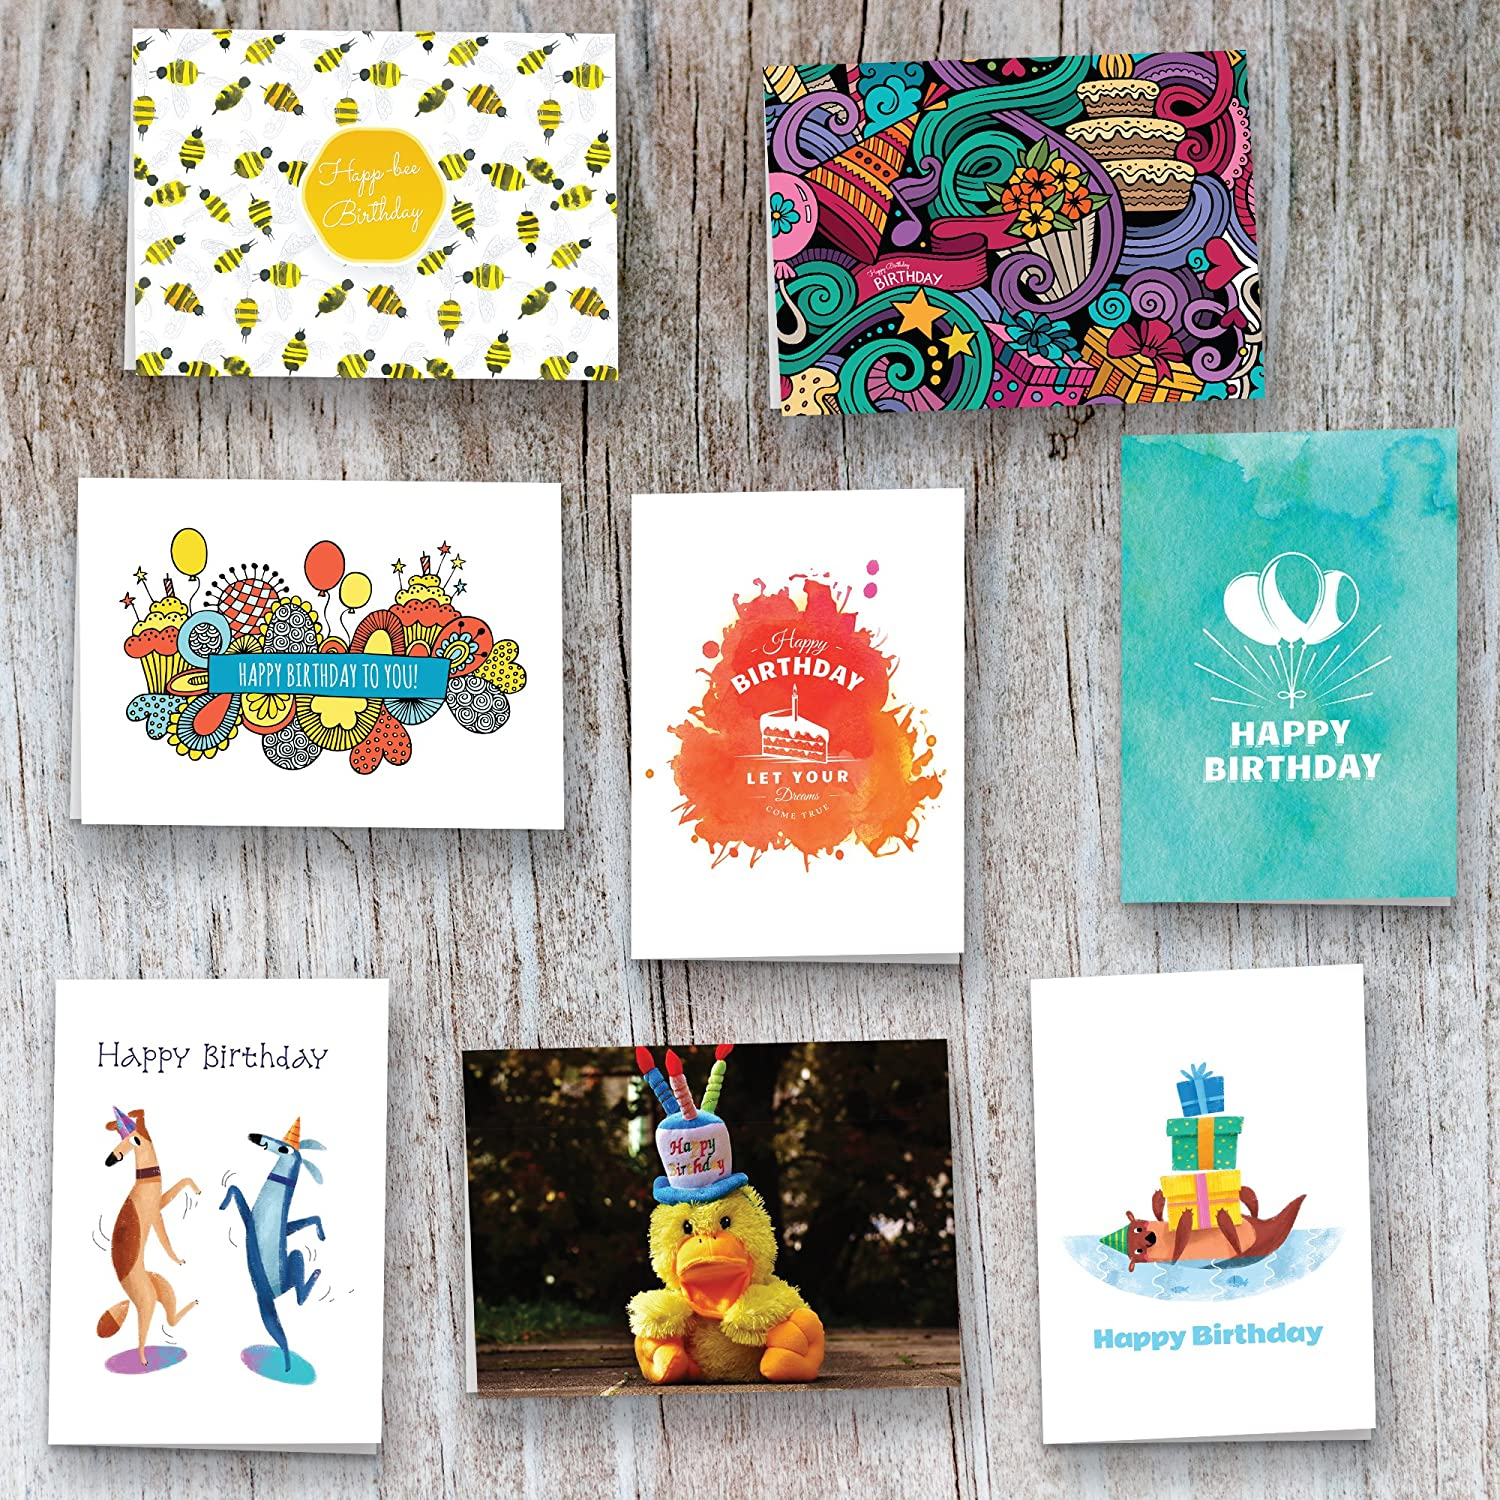 40 Birthday Cards Assortment Happy Card Bulk Box Sets For Women And Men